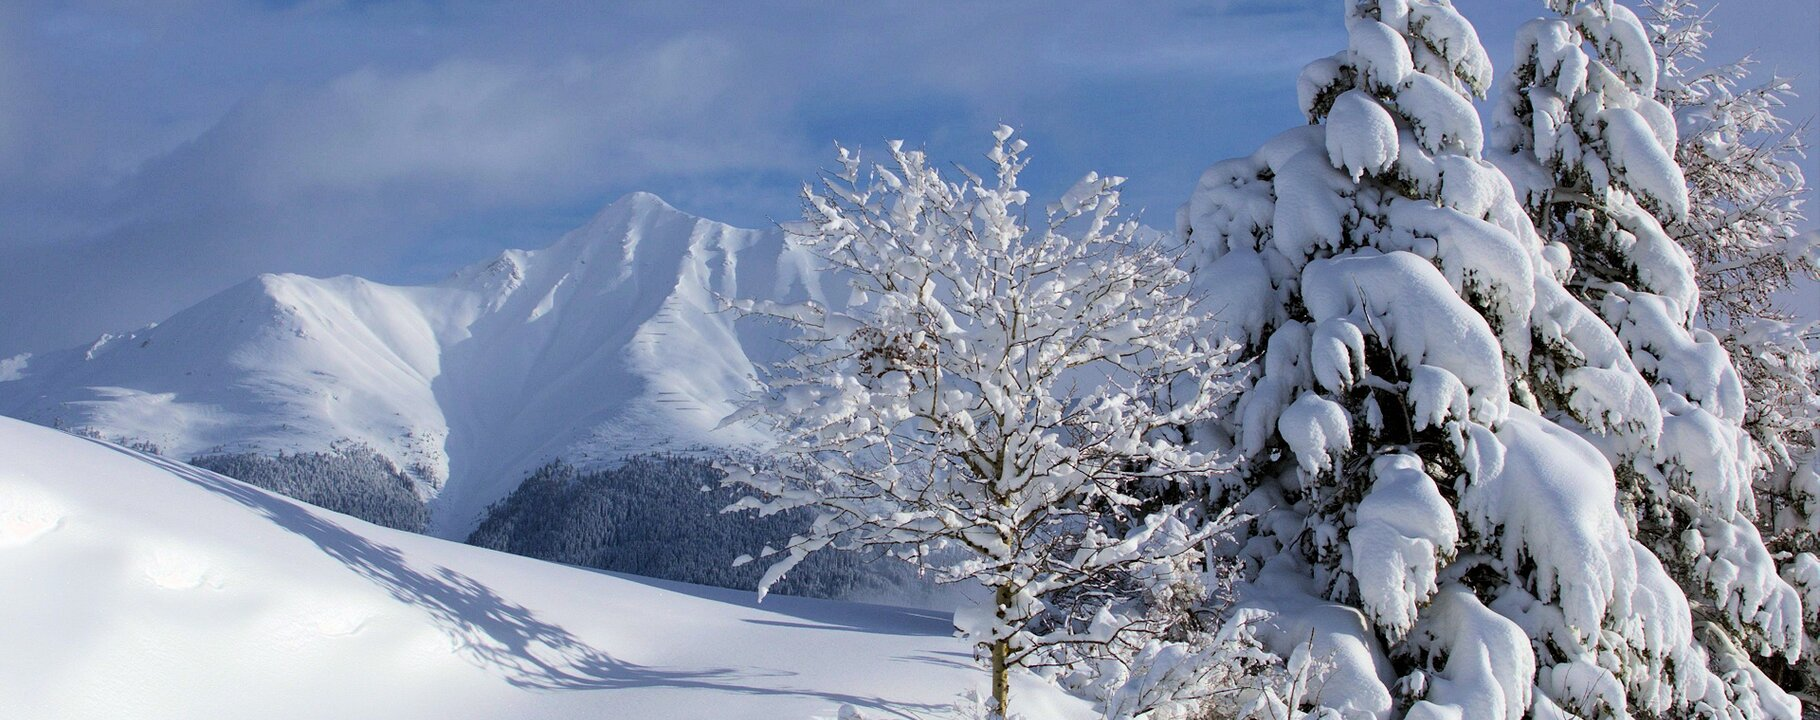 snow-covered winter landscape | © Serfaus-Fiss-Ladis/Tirol